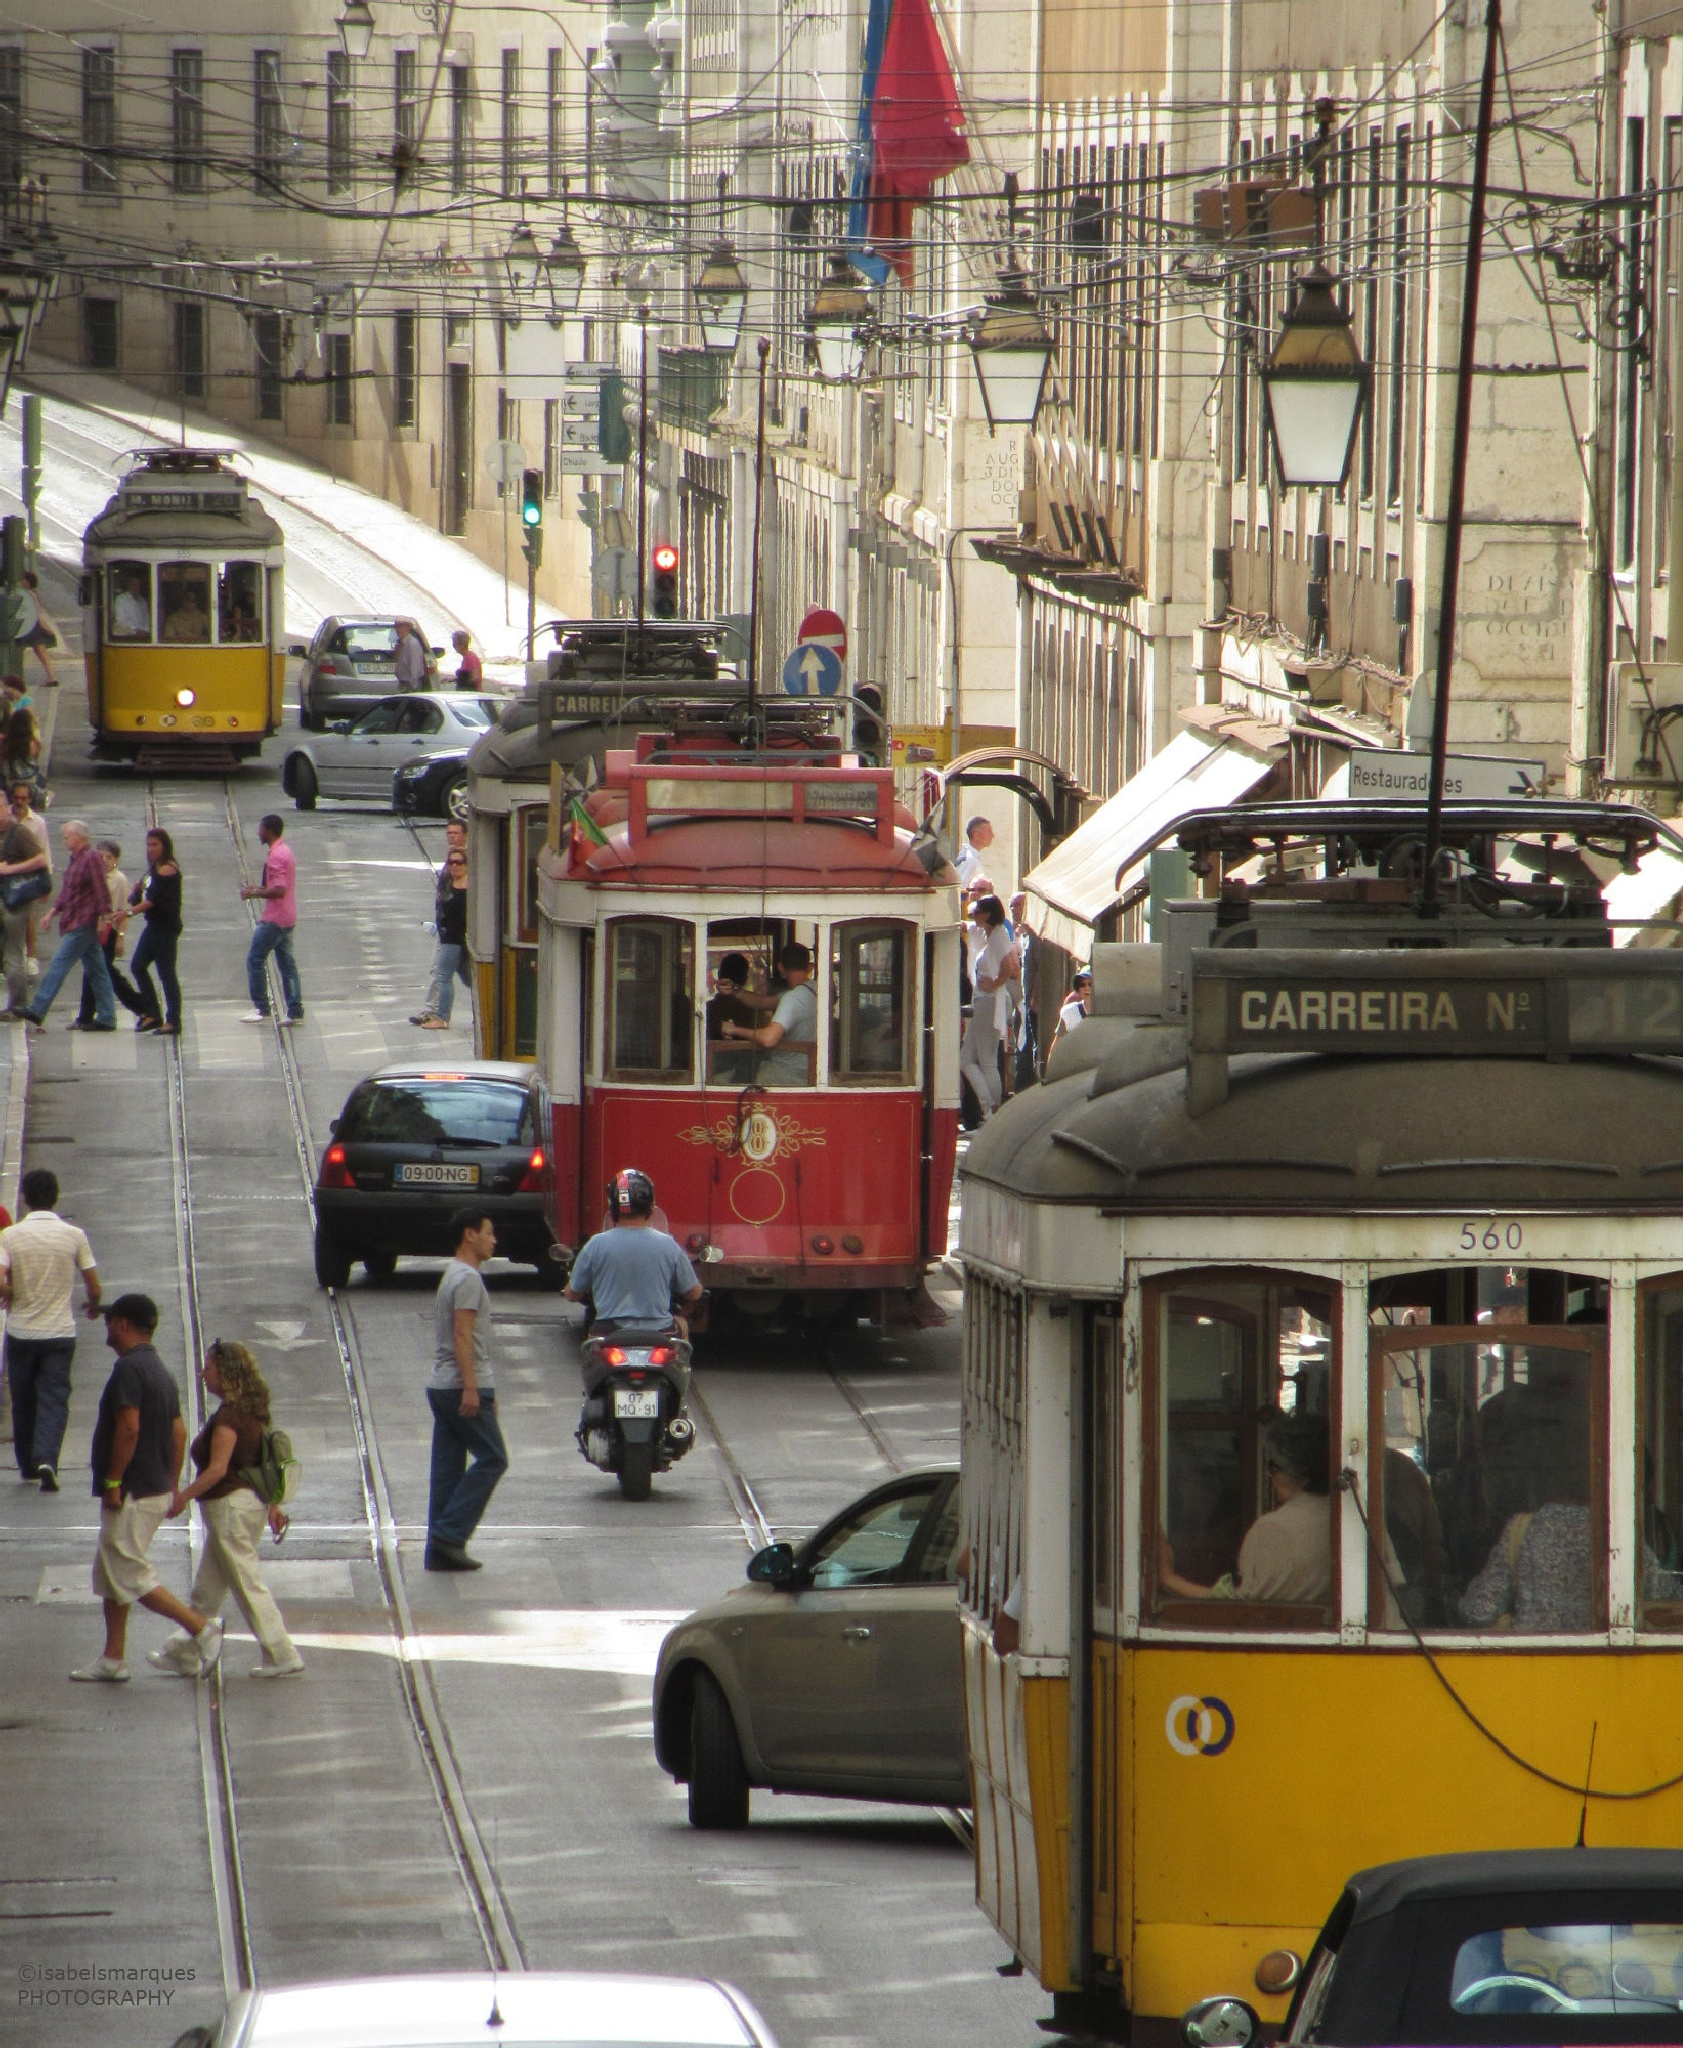 Lisboa by isabelsmarques